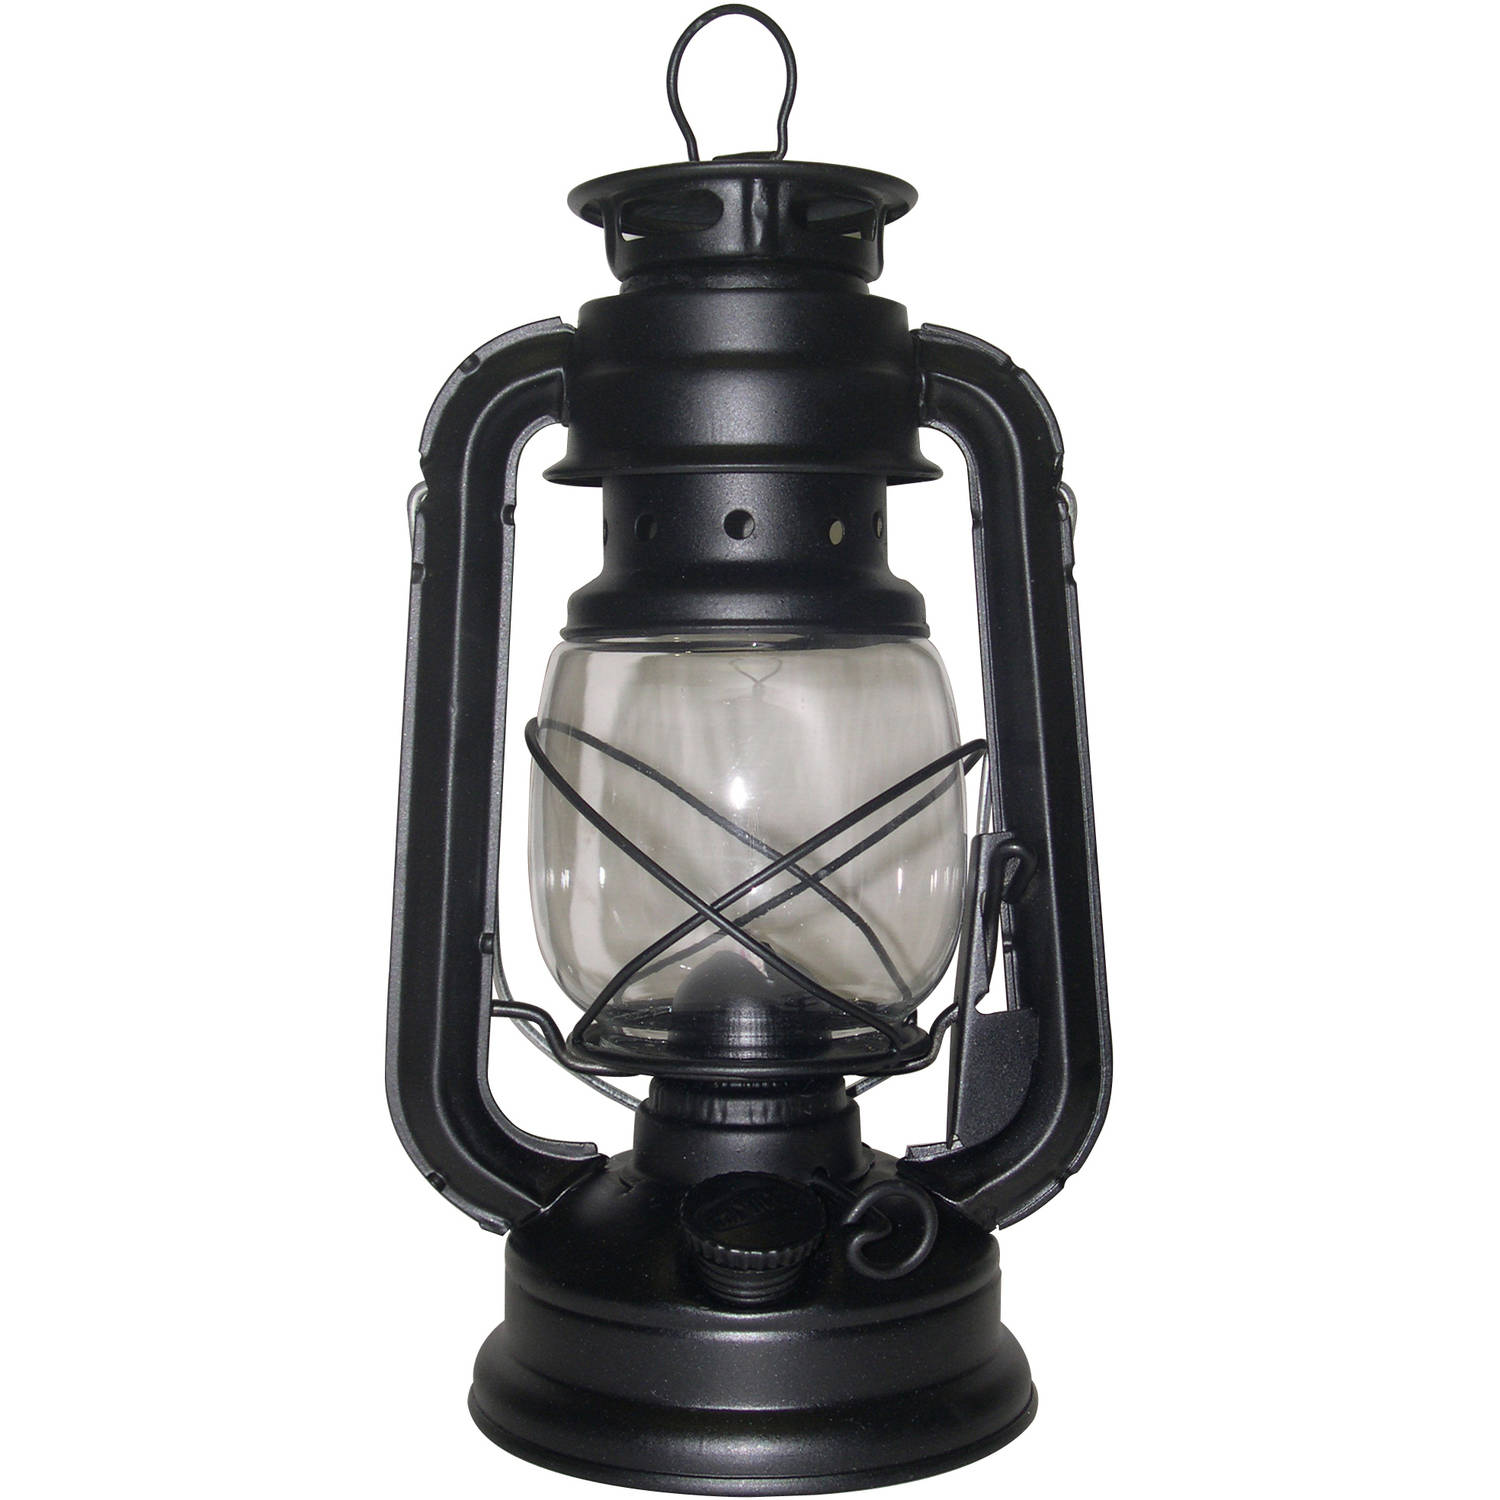 Lovely Hurricane Oil Lantern Florasense , Black ORIGINAL Top Quality Indoor Outdoor